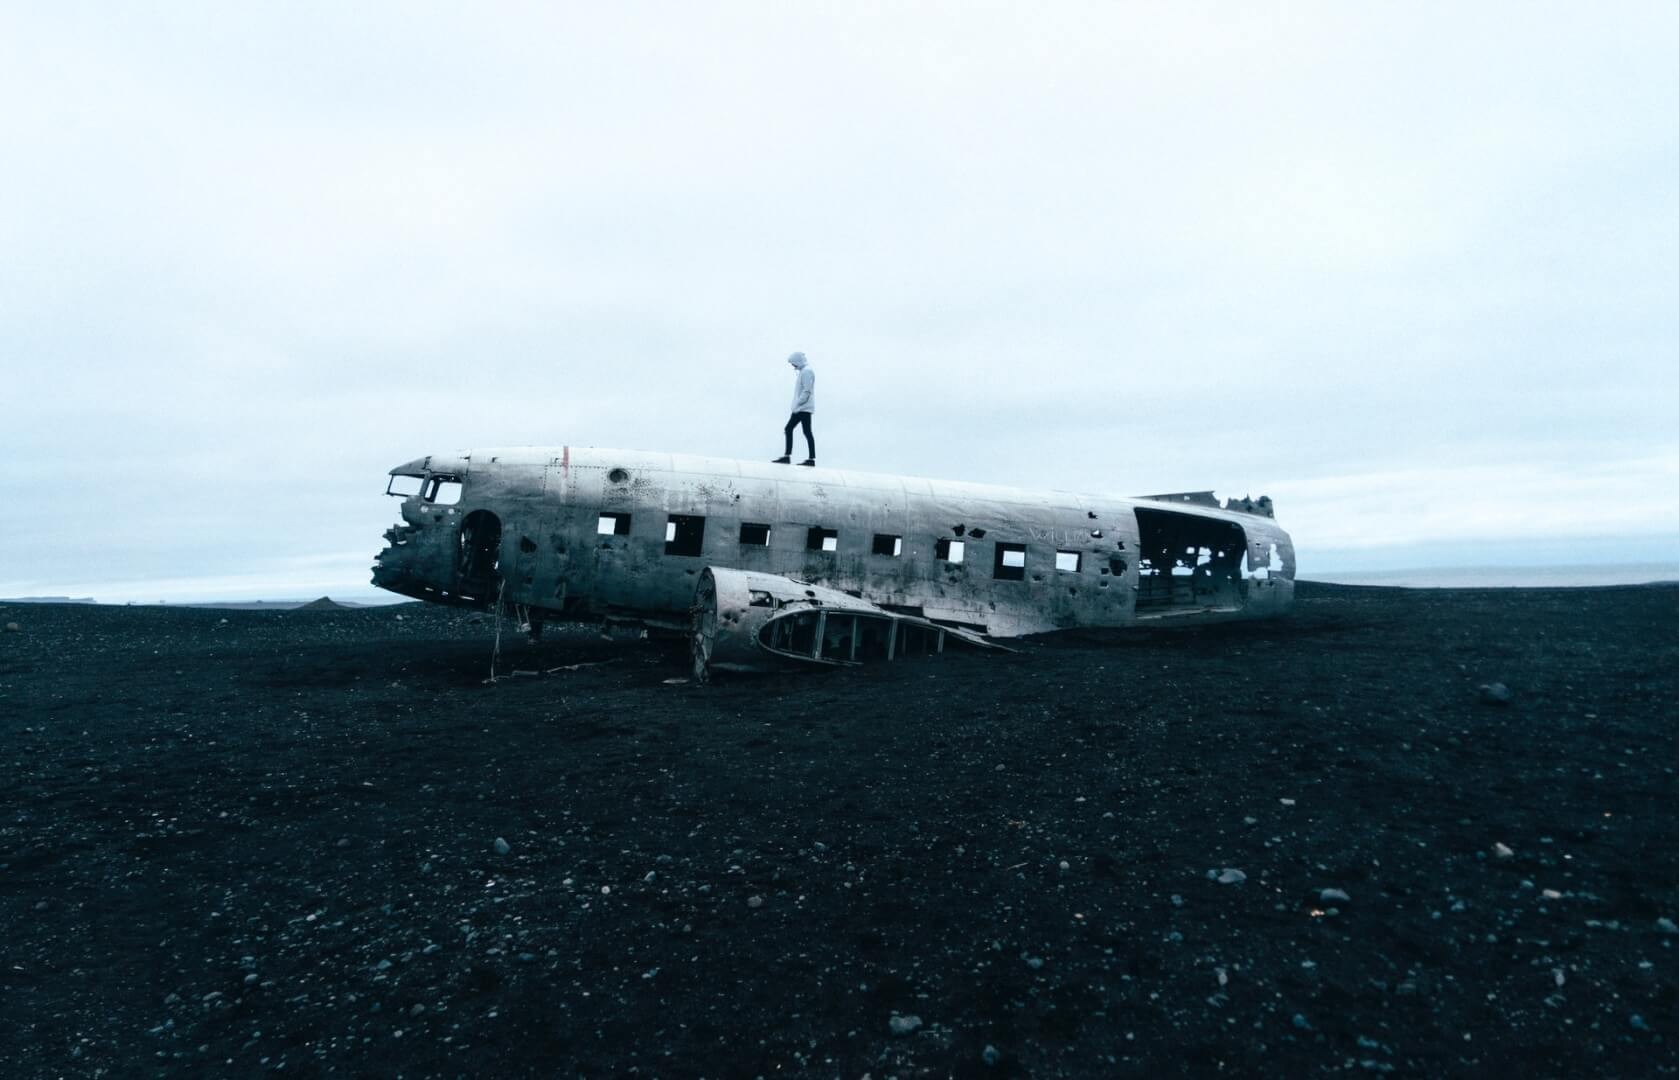 person standing on wrecked plane 919606